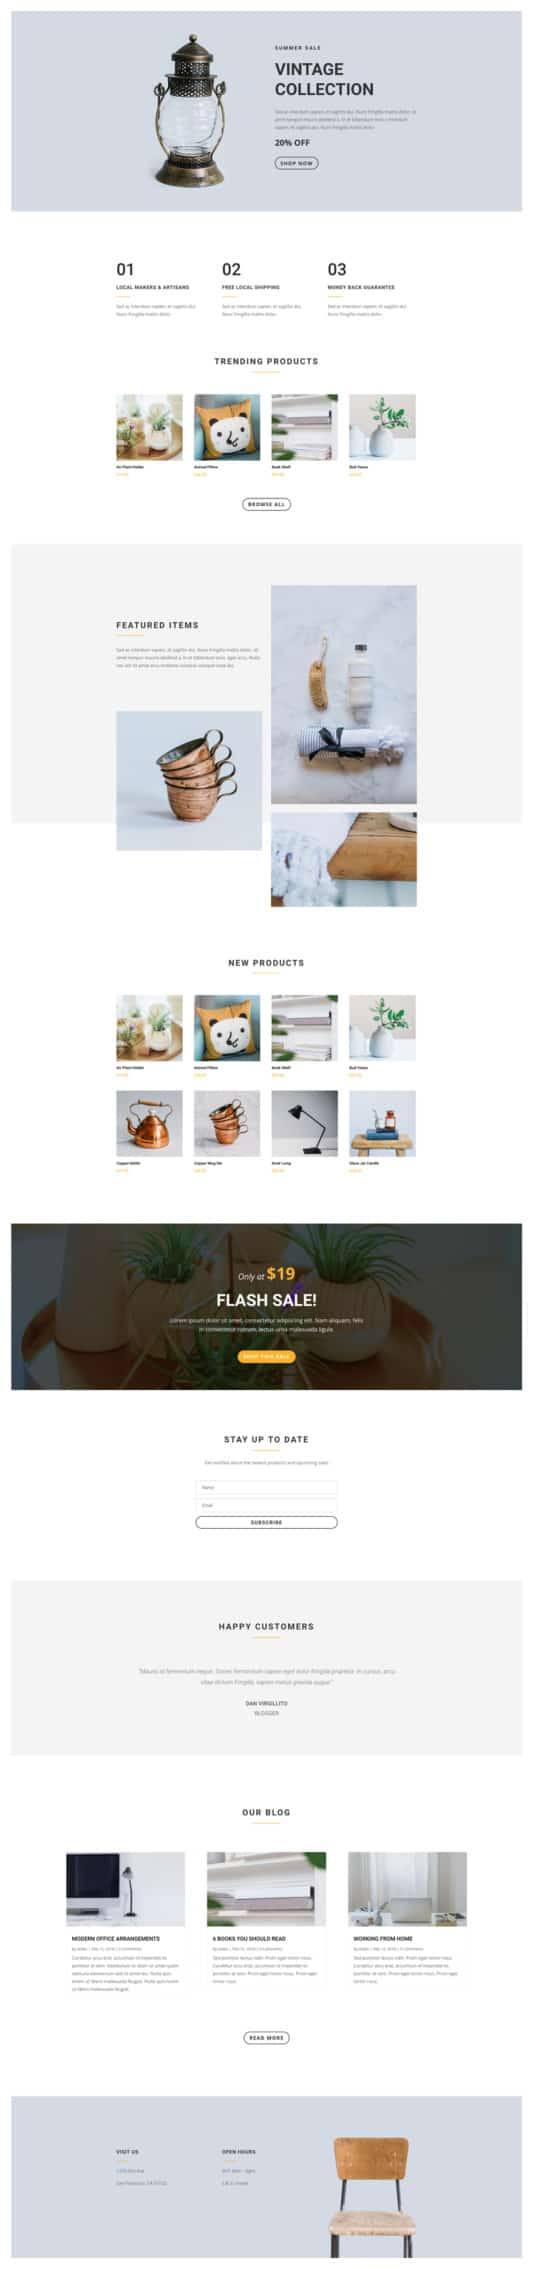 The Boutique Page Style: Homepage Design 1